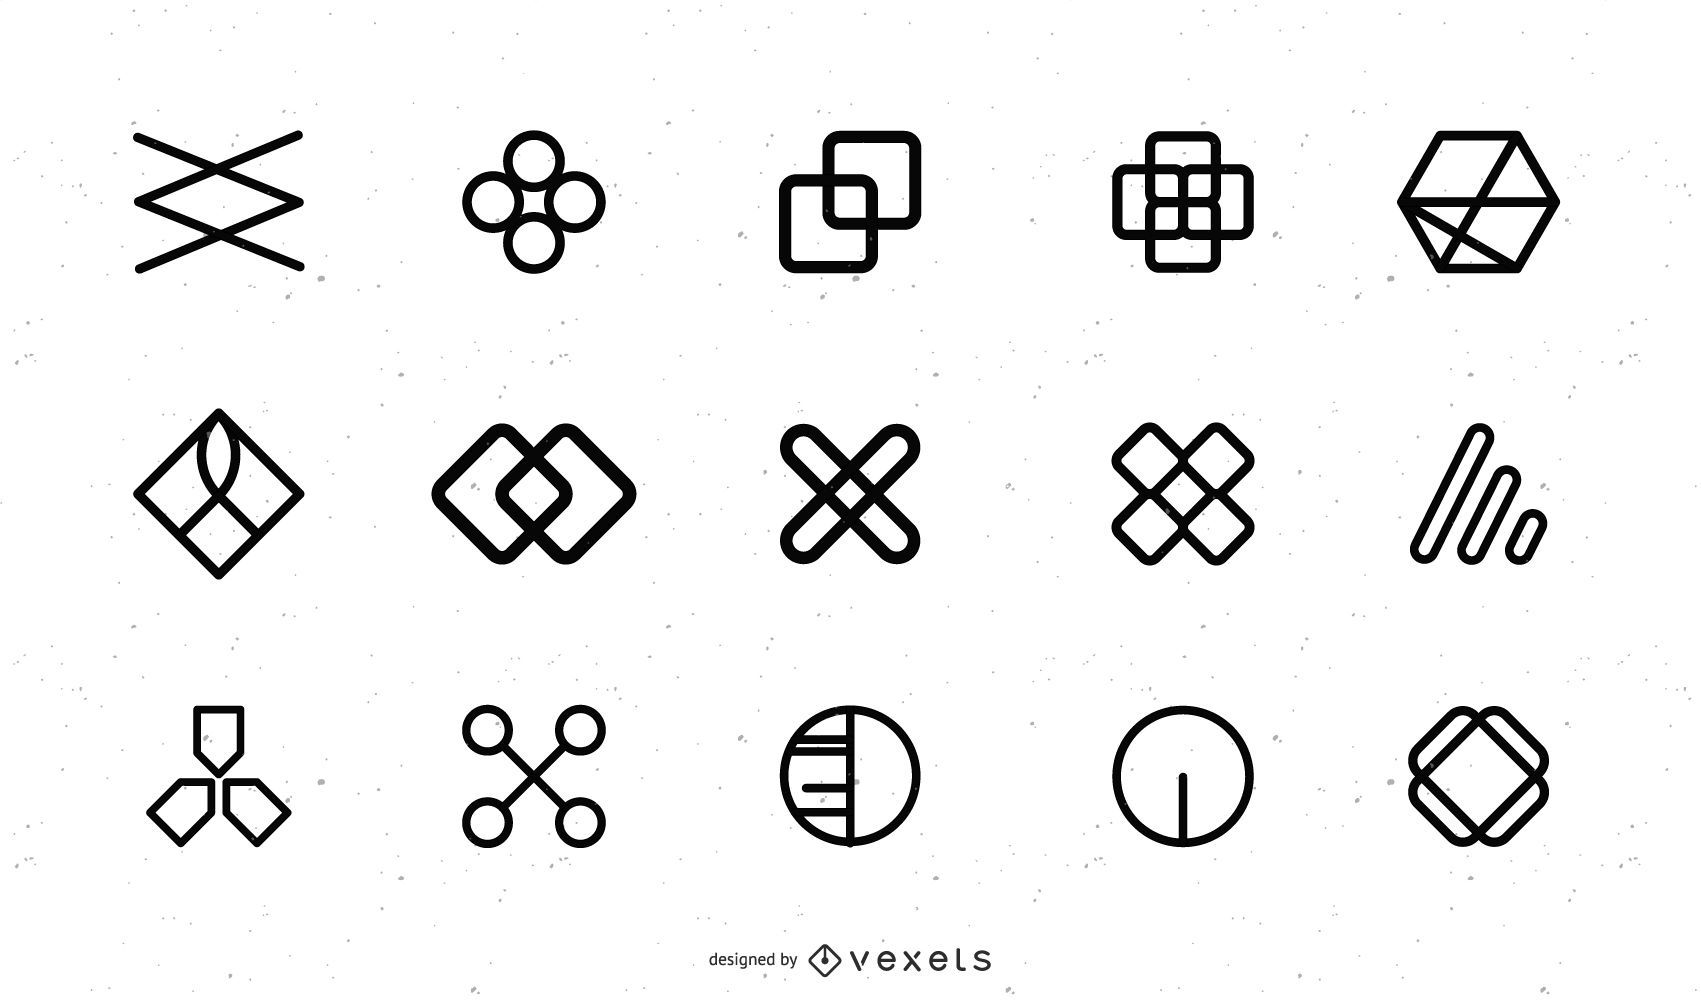 Free Vector Icons Design Elements Pack 01